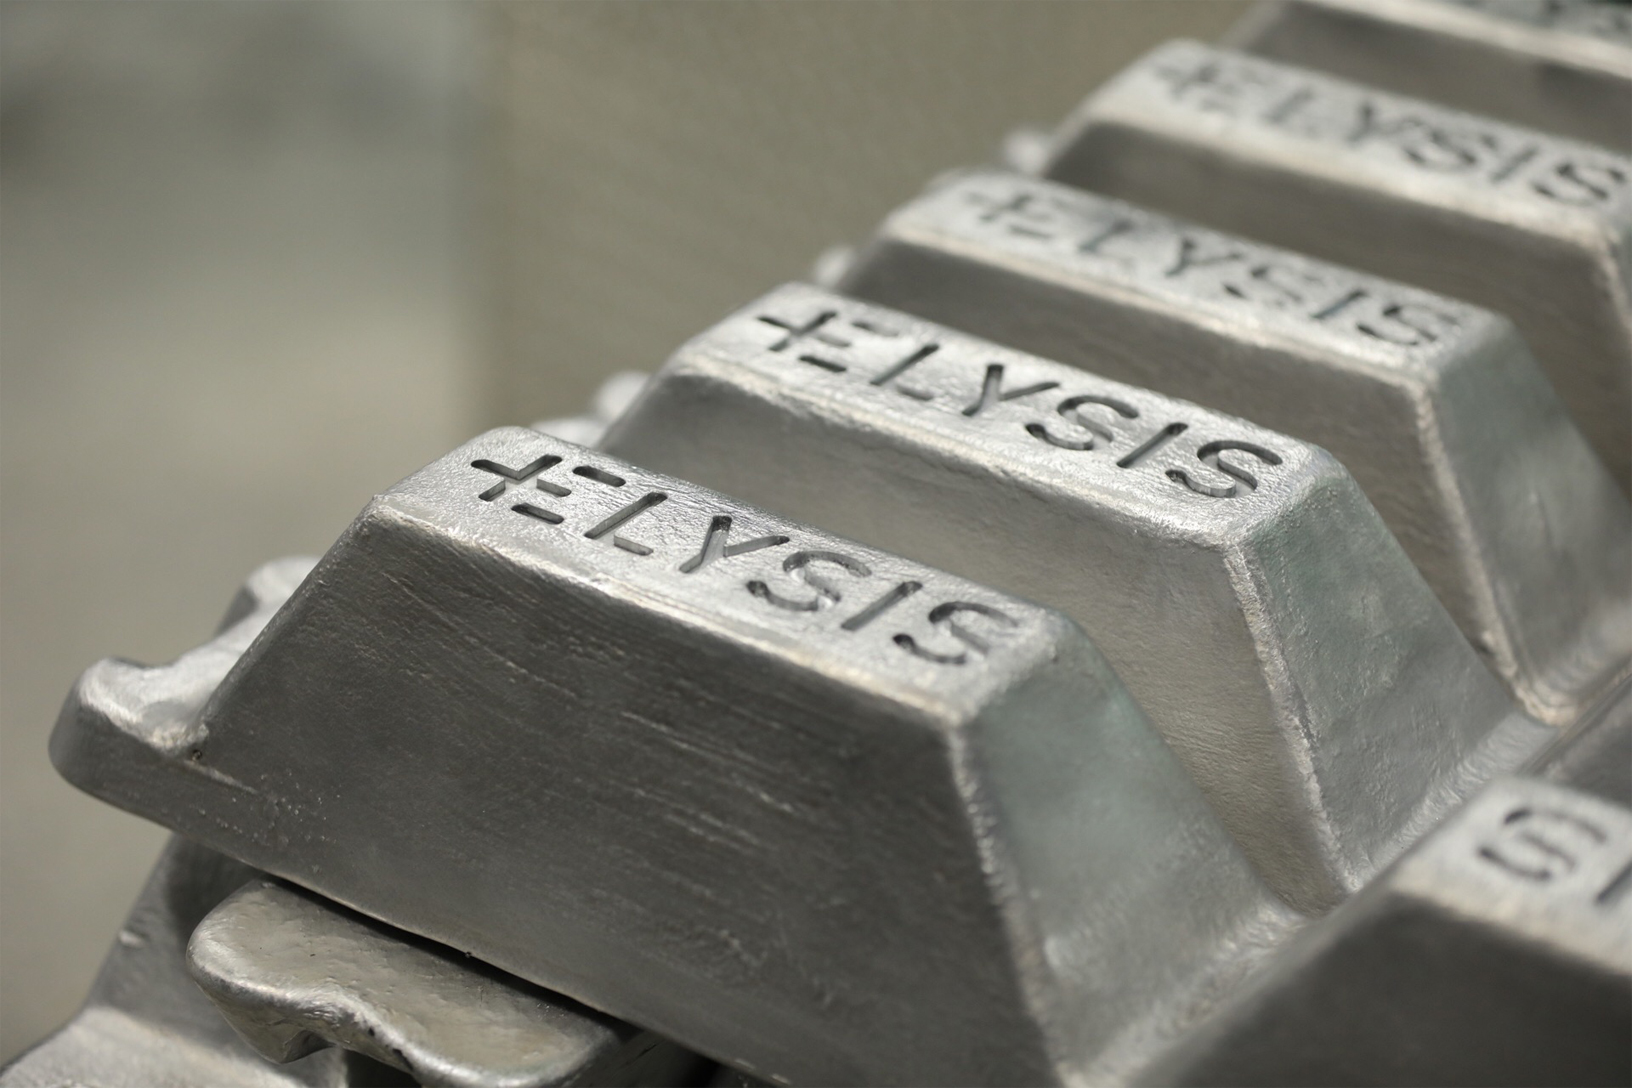 Elysis is Alcoa's new aluminum-smelting tie-up with Rio Tinto.